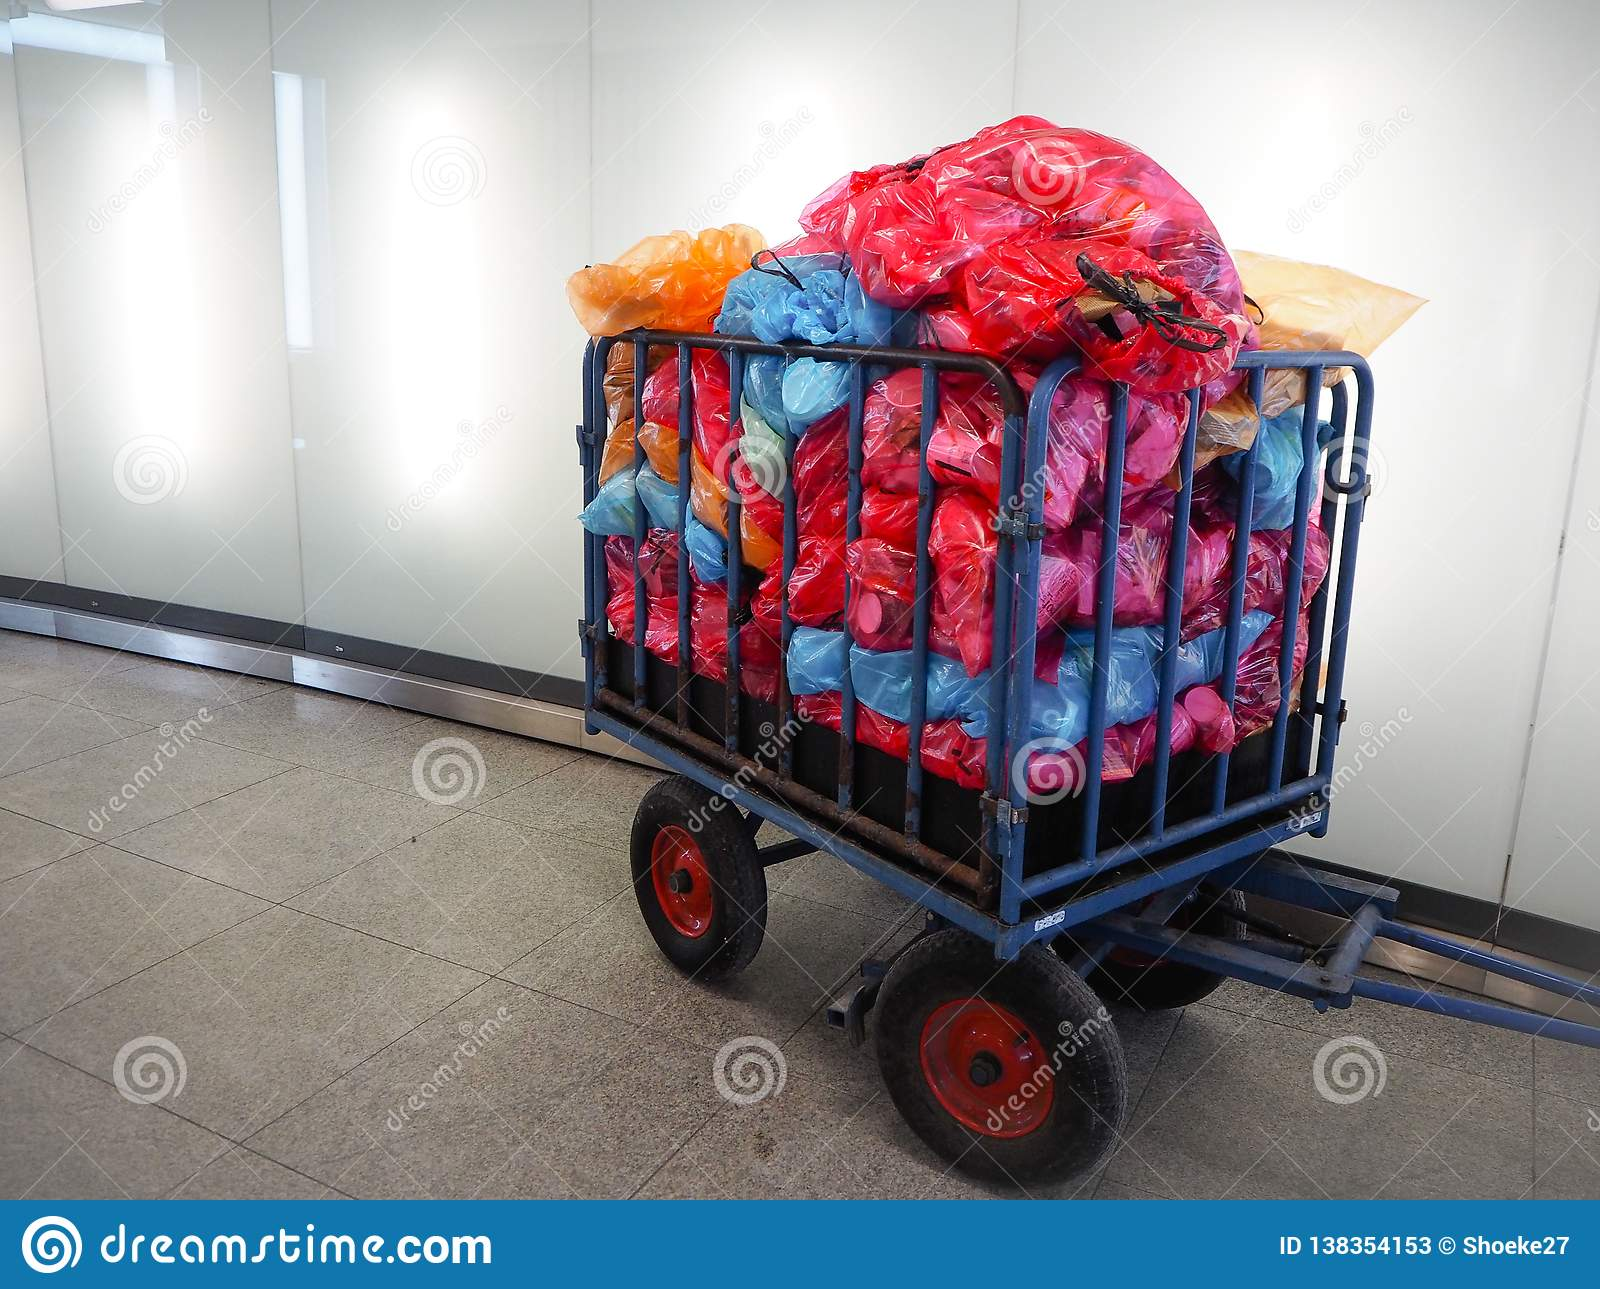 Metal cart for waste collection with a large pile of colorful plastic bags filled with sorted waste ready